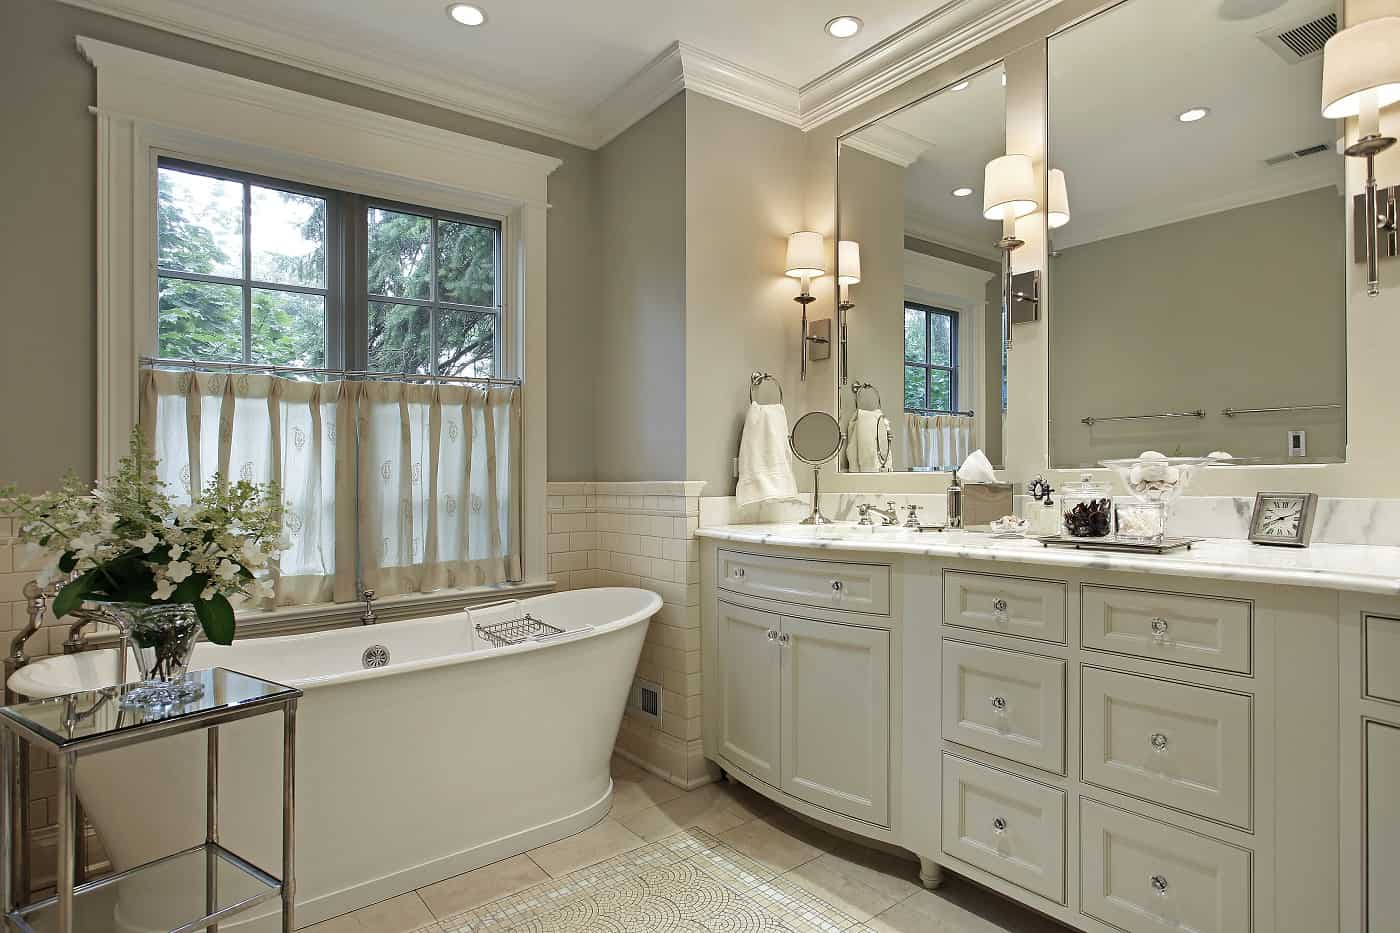 Rustic bathroom style after remodeling